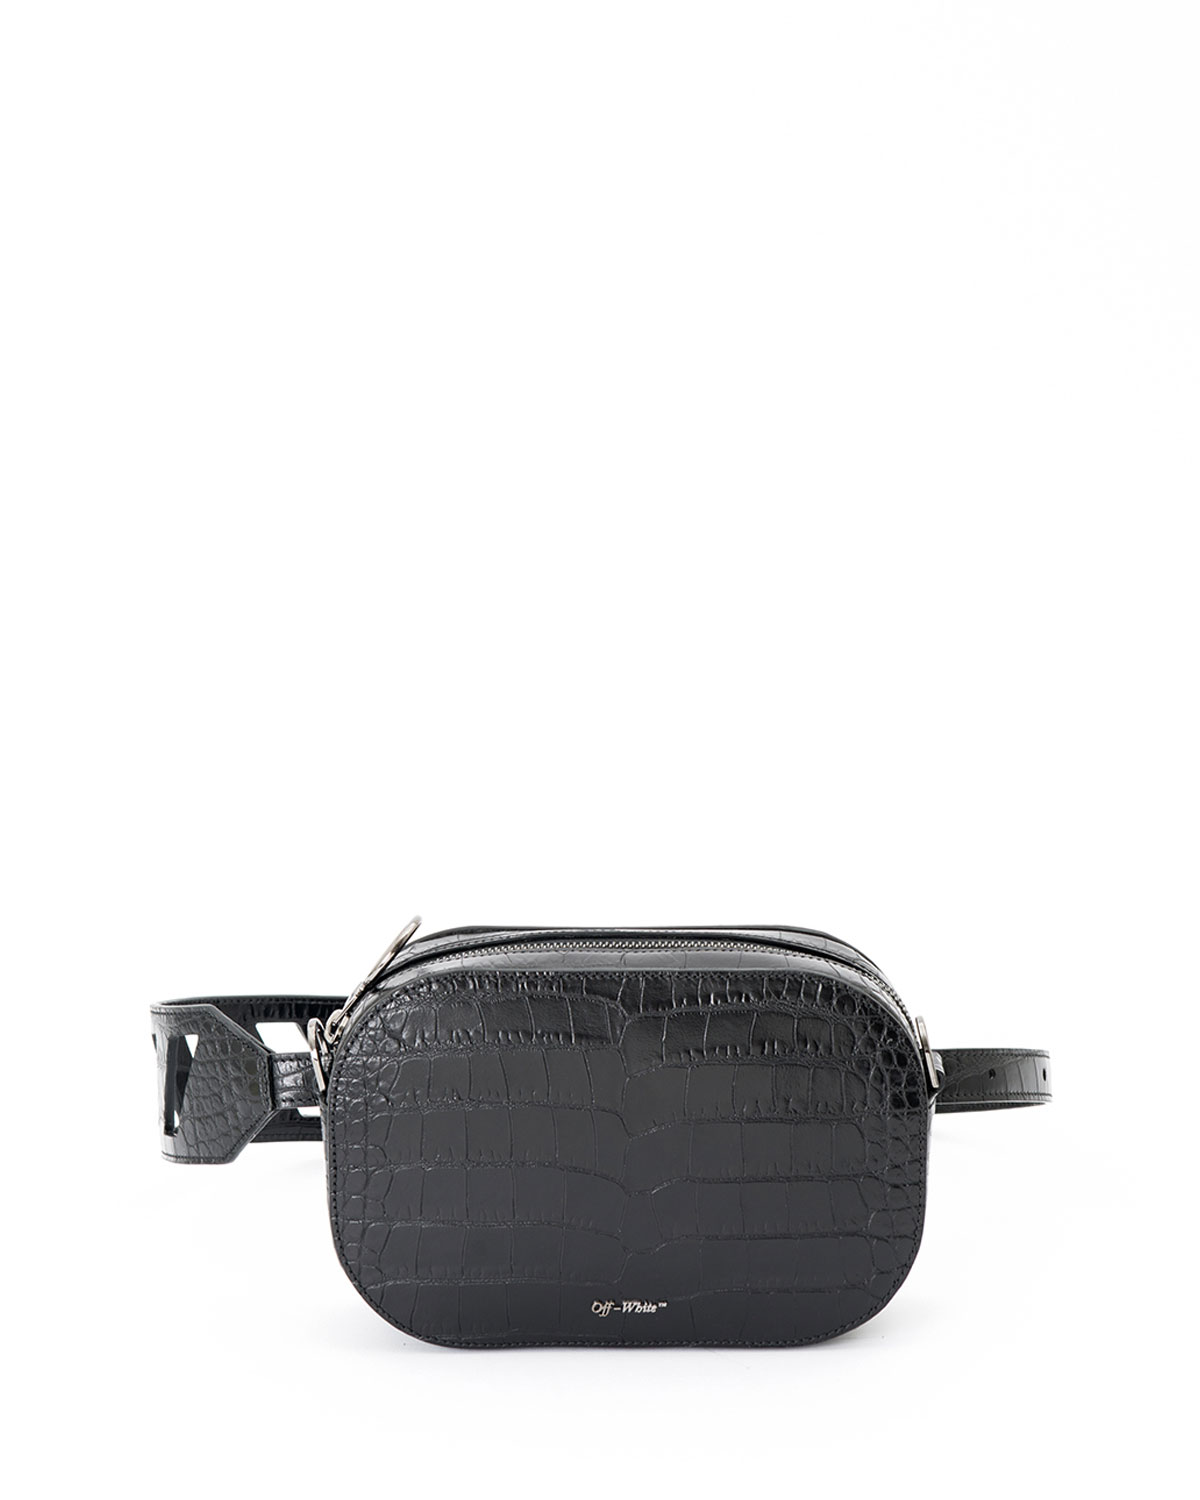 c3756c1bdf Off-White Cocco Stamped Leather Camera Bag